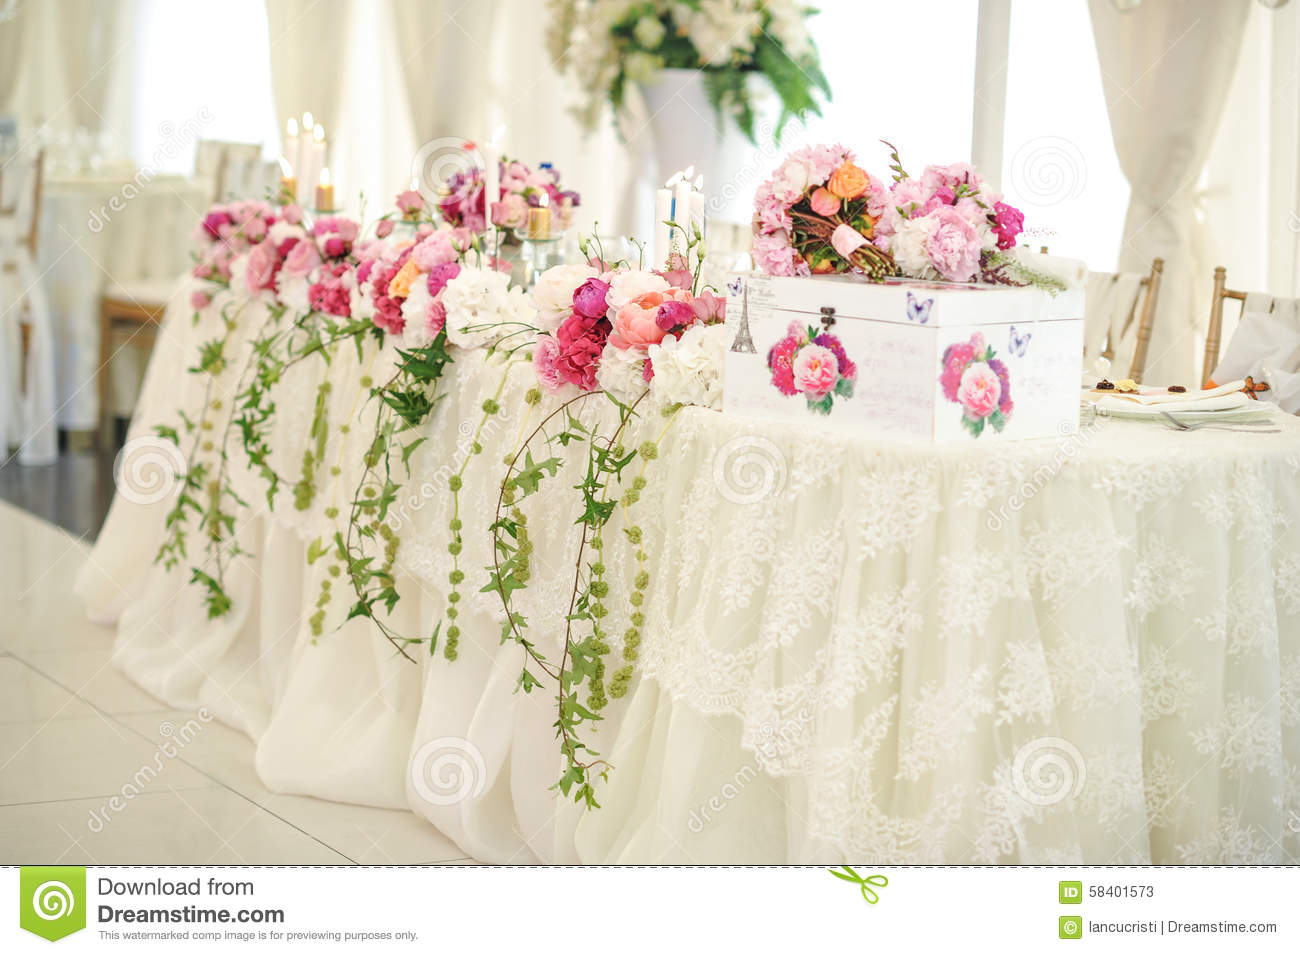 Wedding Decoration On Table Floral Arrangements And Decoration Arrangement Of Pink And White